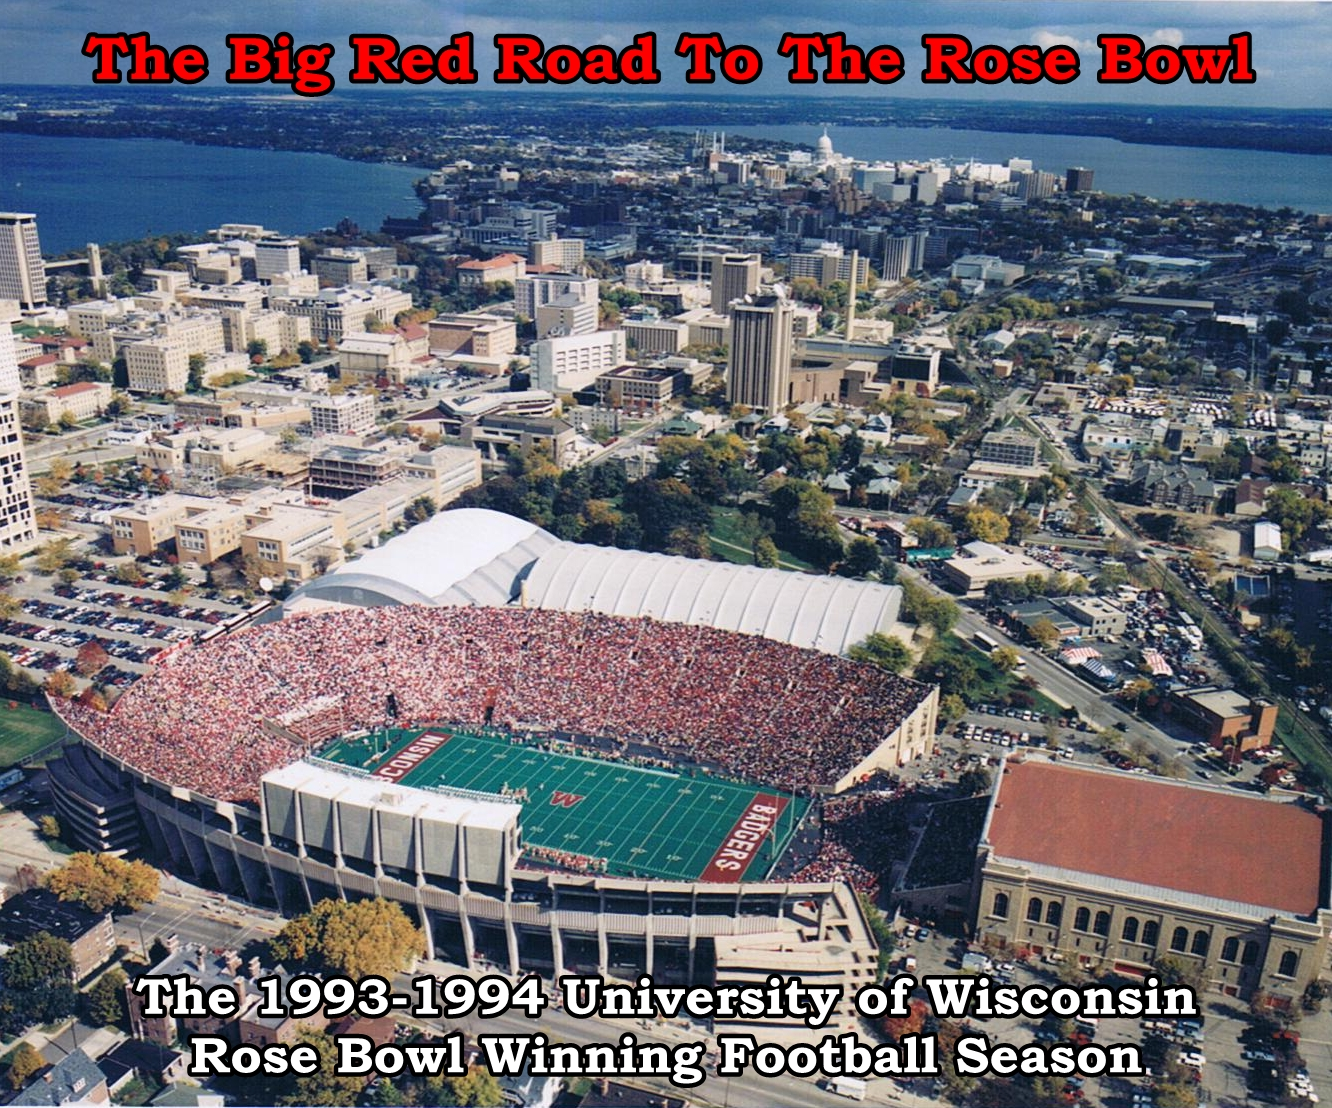 The Big Red Road To The Rose Bowl: The 1993-94 University of Wisconsin Rose Bowl Winning Football Season [DD]